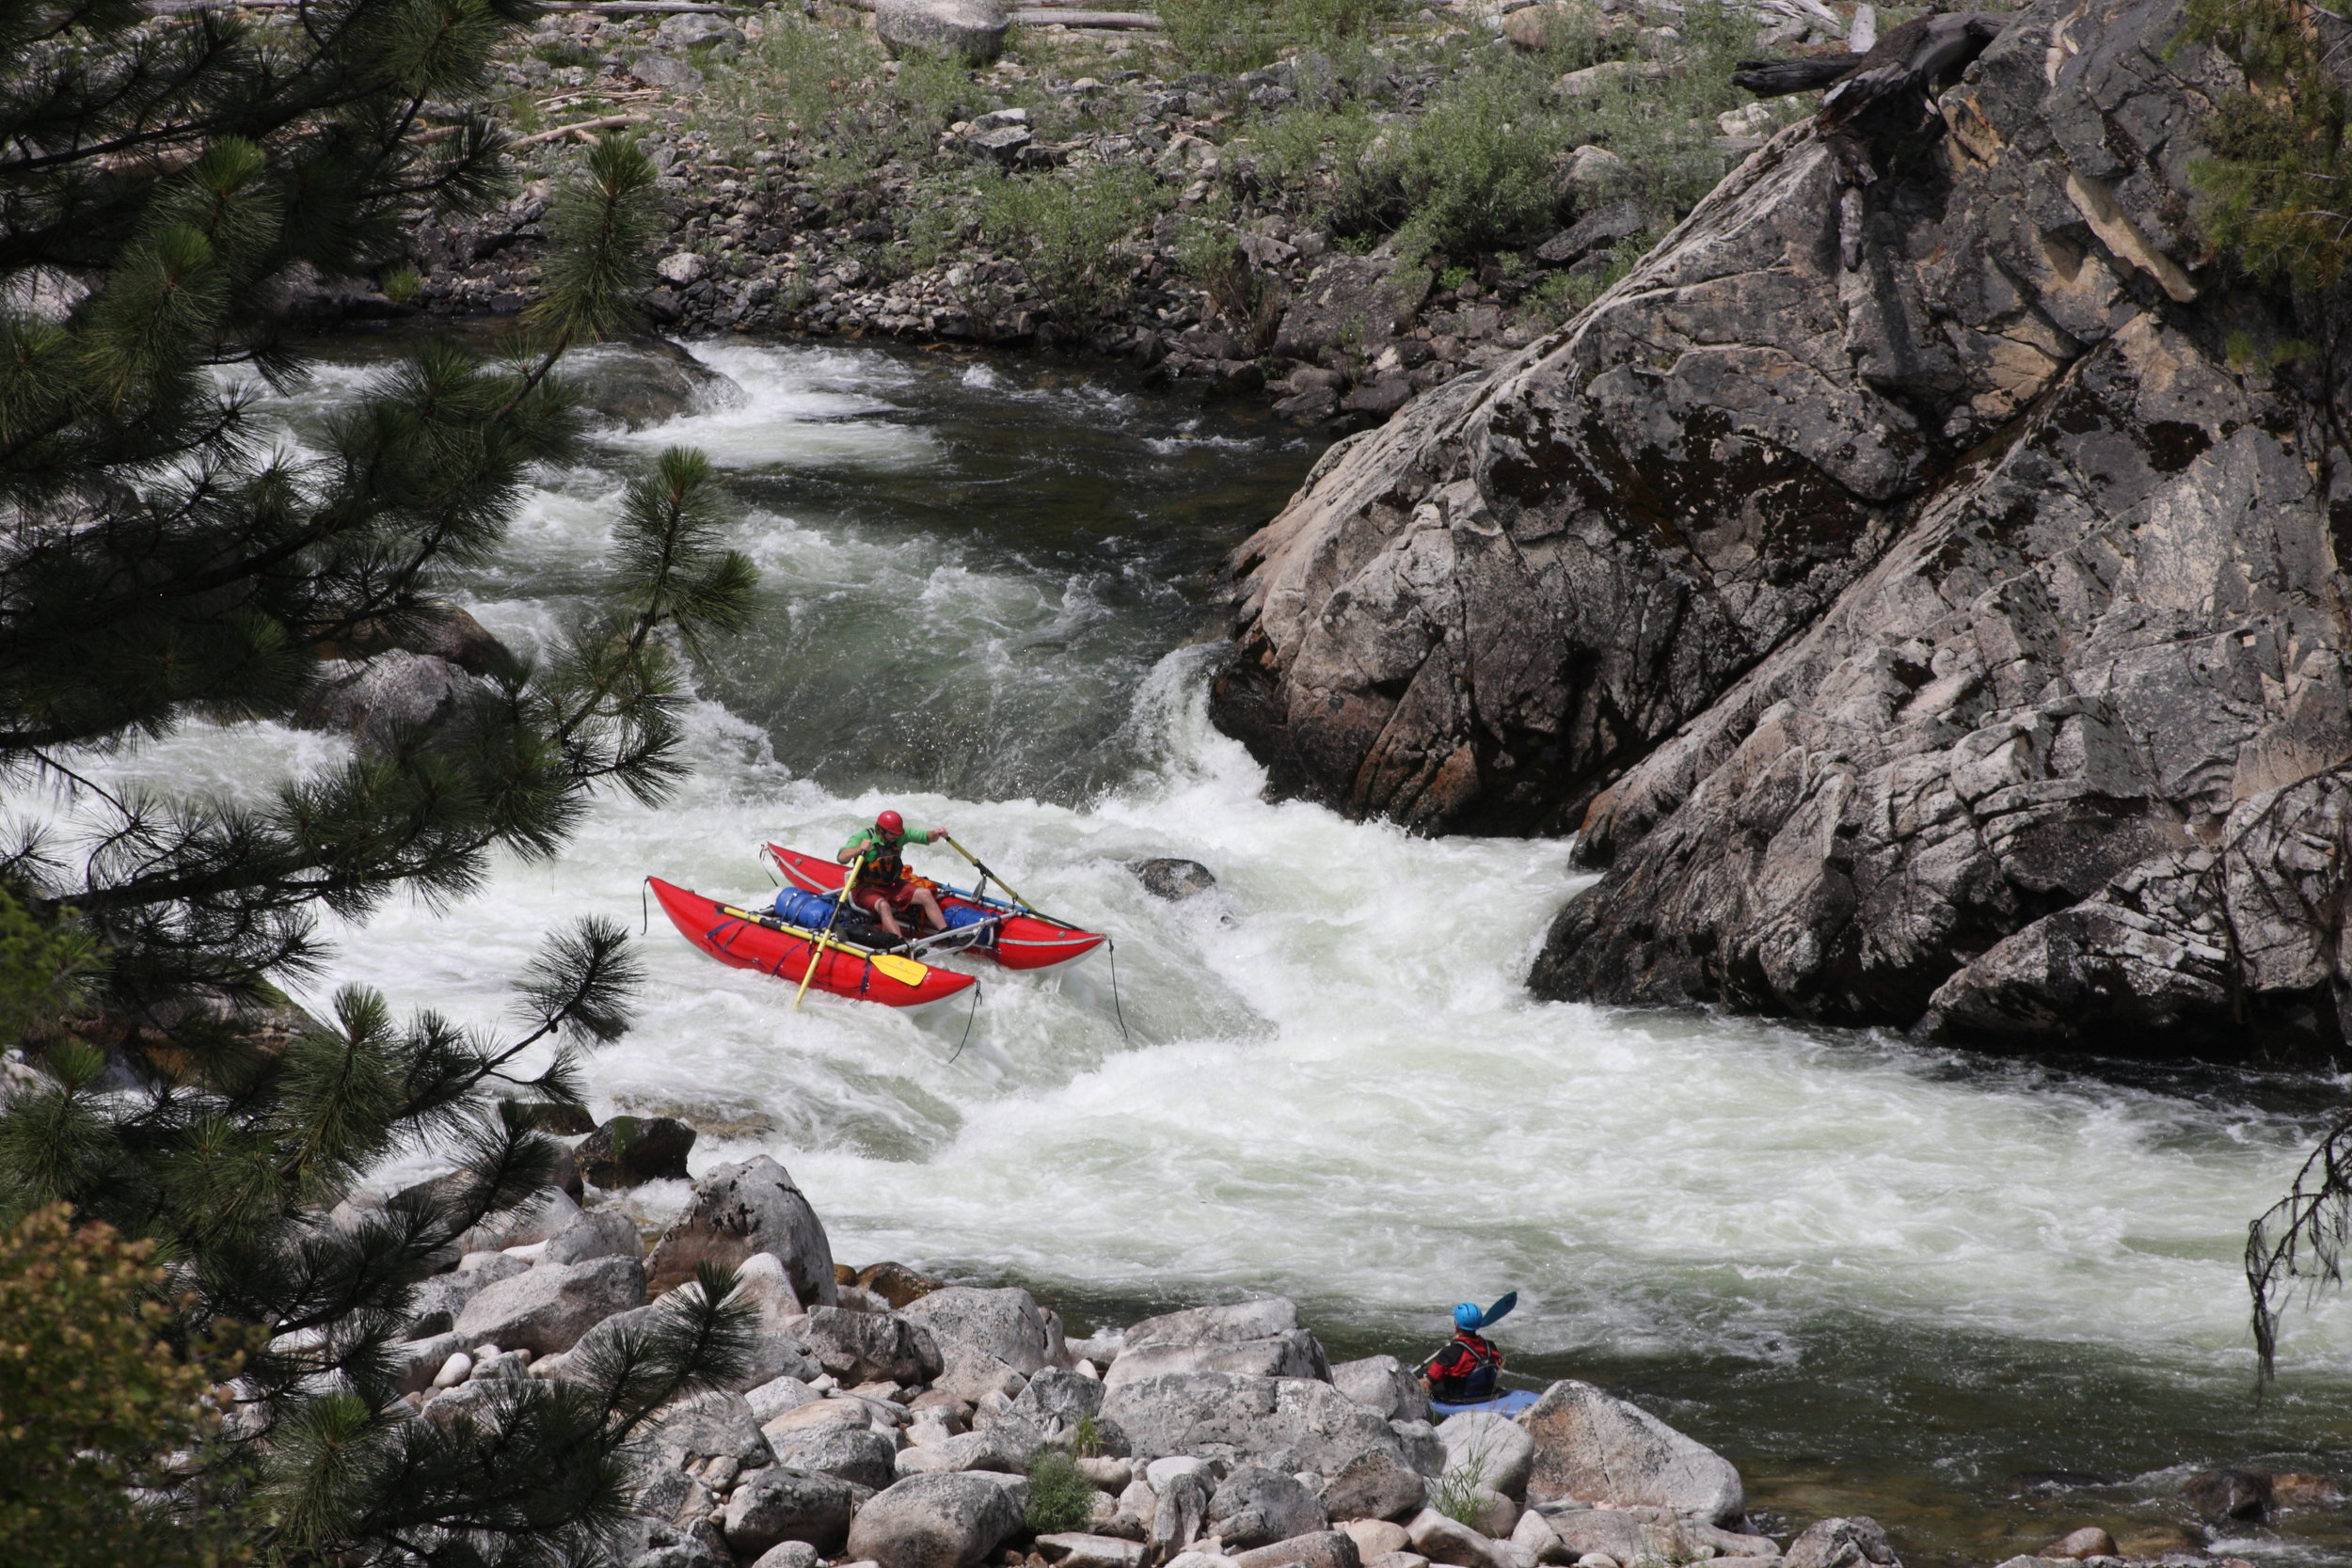 A cataraft navigating the expert waters of the South Fork